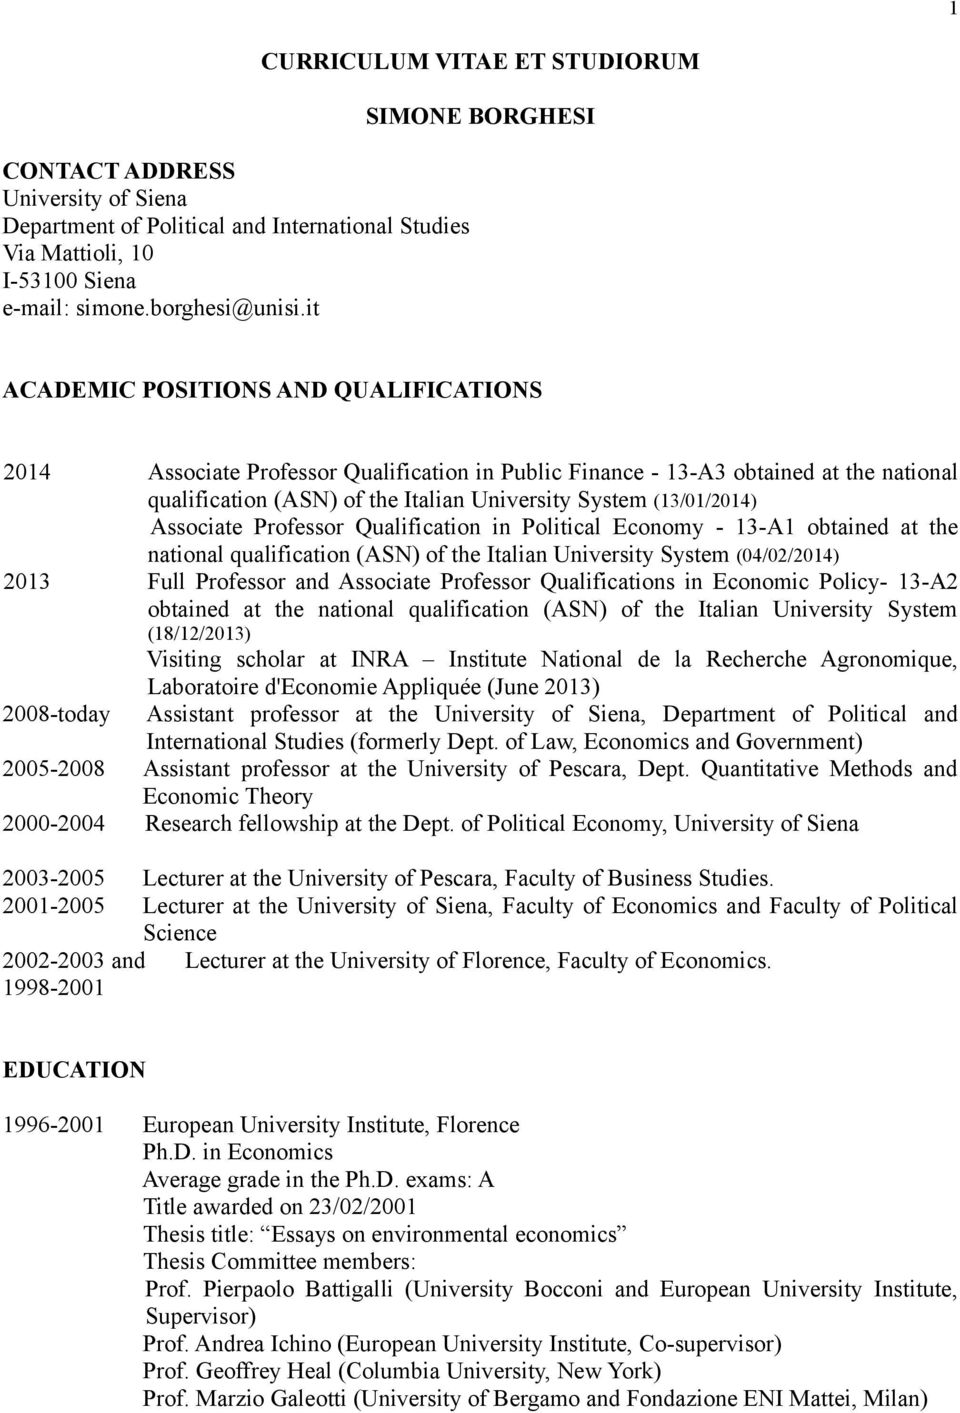 the Italian University System (13/01/2014) Associate Professor Qualification in Political Economy - 13-A1 obtained at the national qualification (ASN) of the Italian University System (04/02/2014)